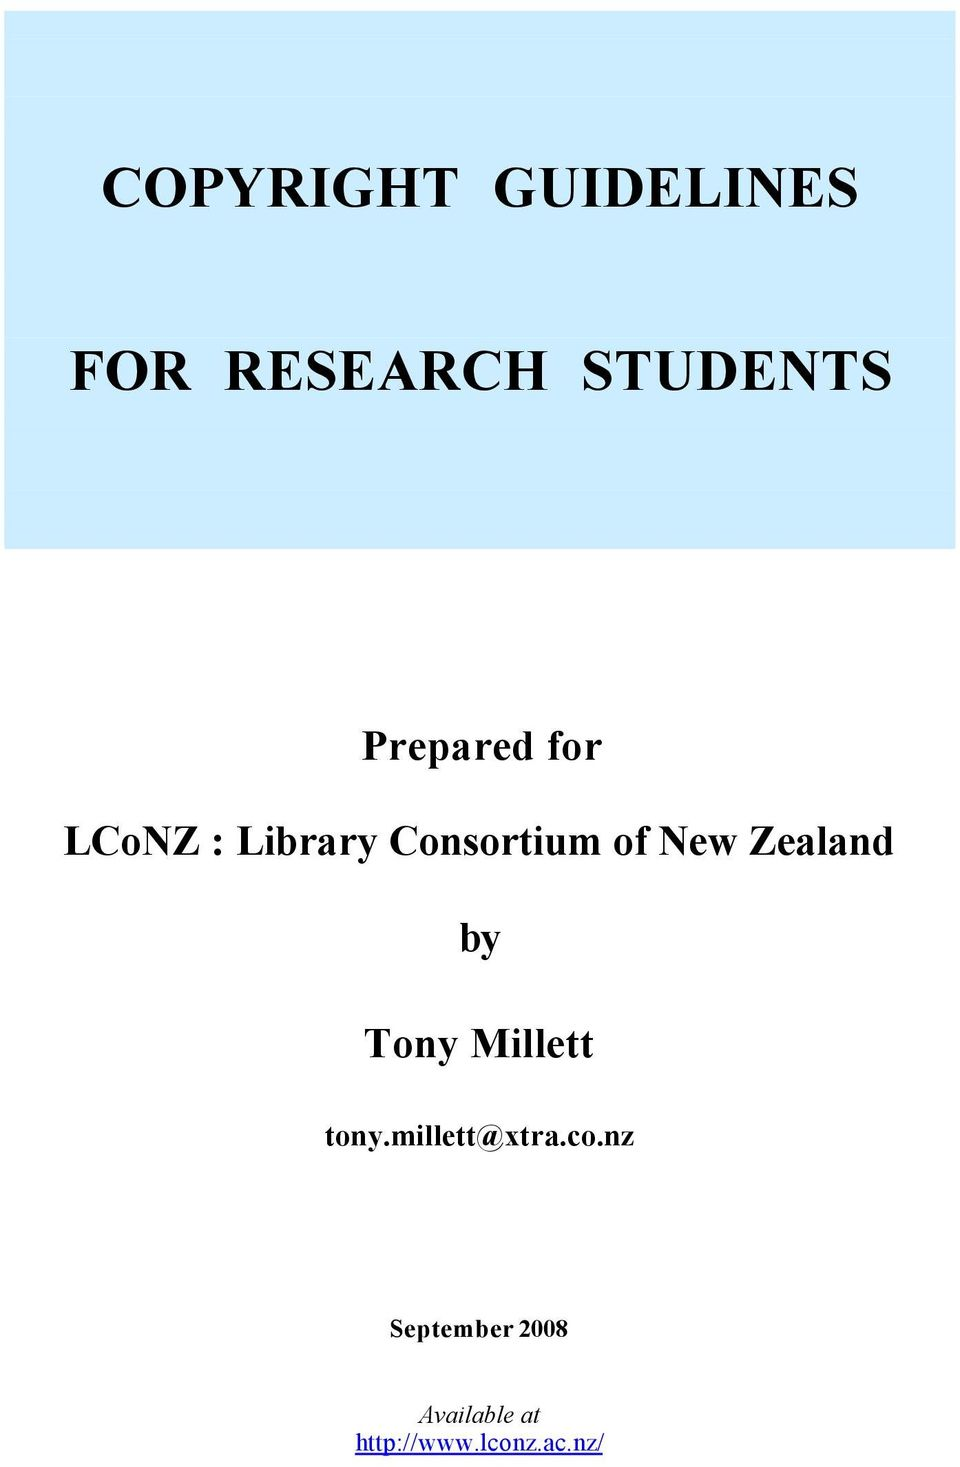 Zealand by Tony Millett tony.millett@xtra.co.